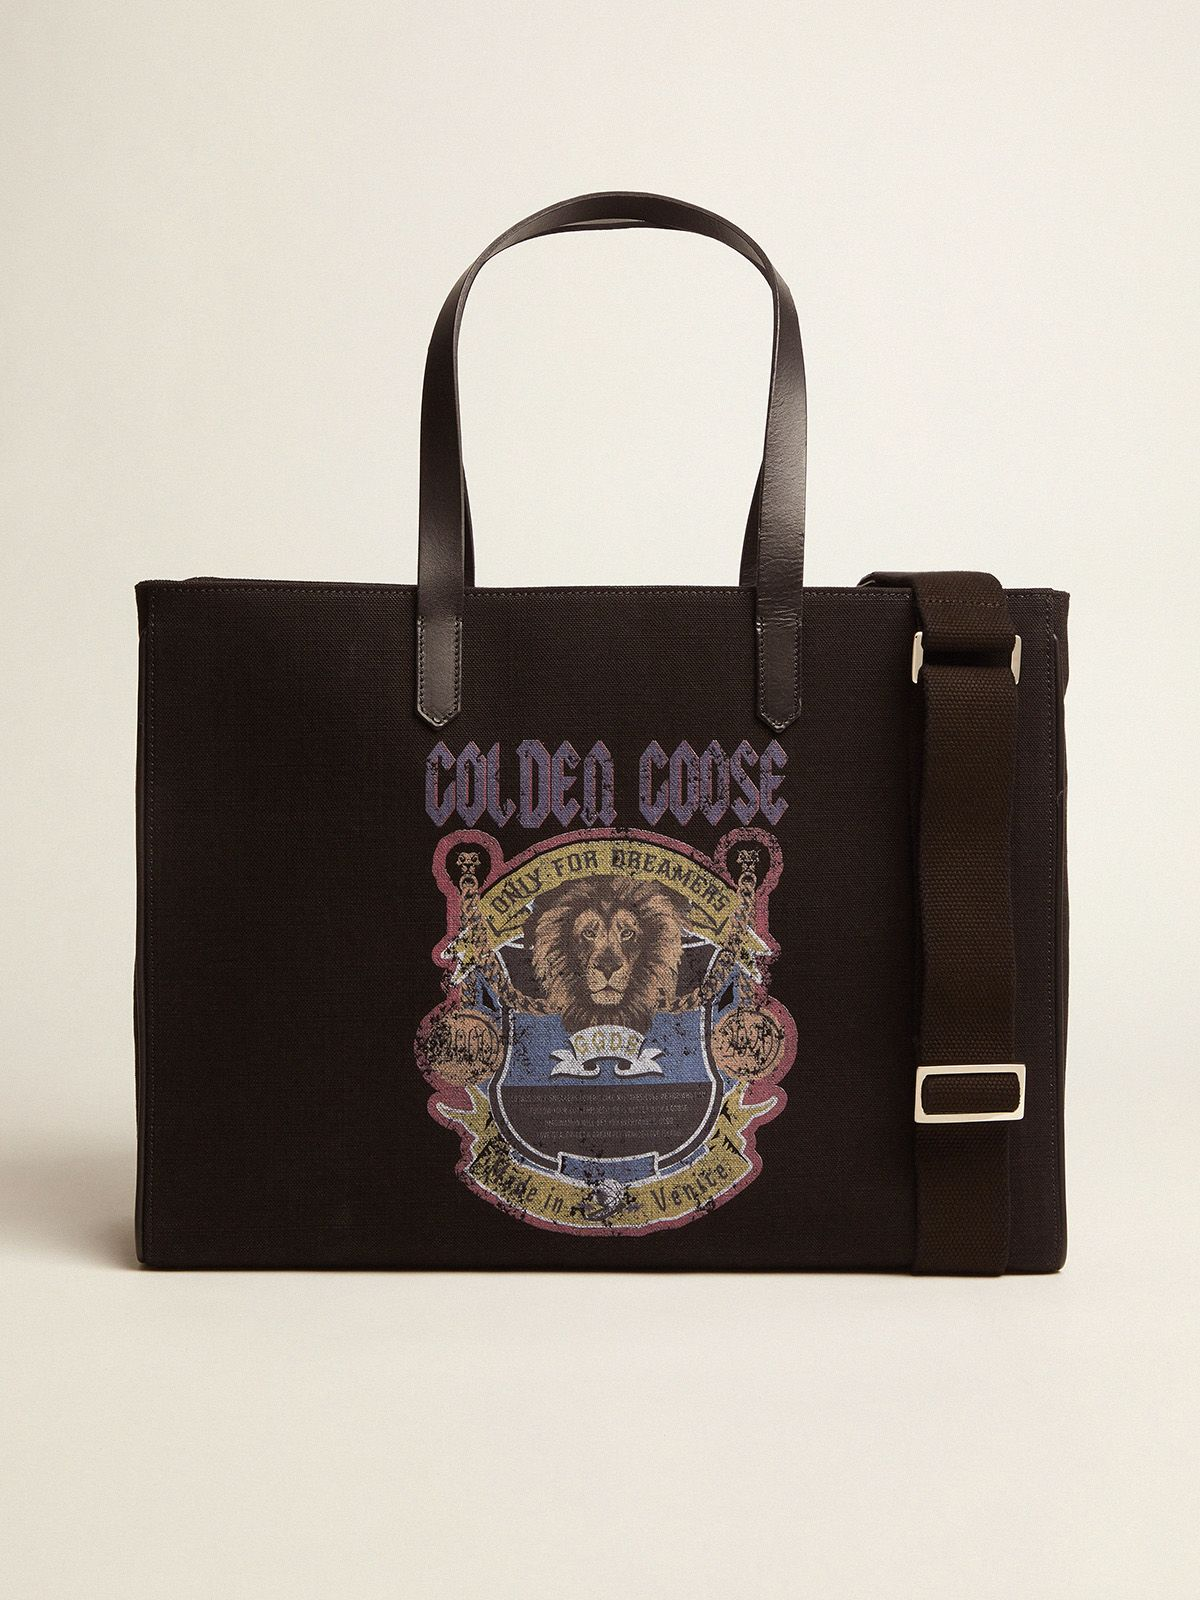 Golden Goose - Borsa California East-West nera con stampa vintage in